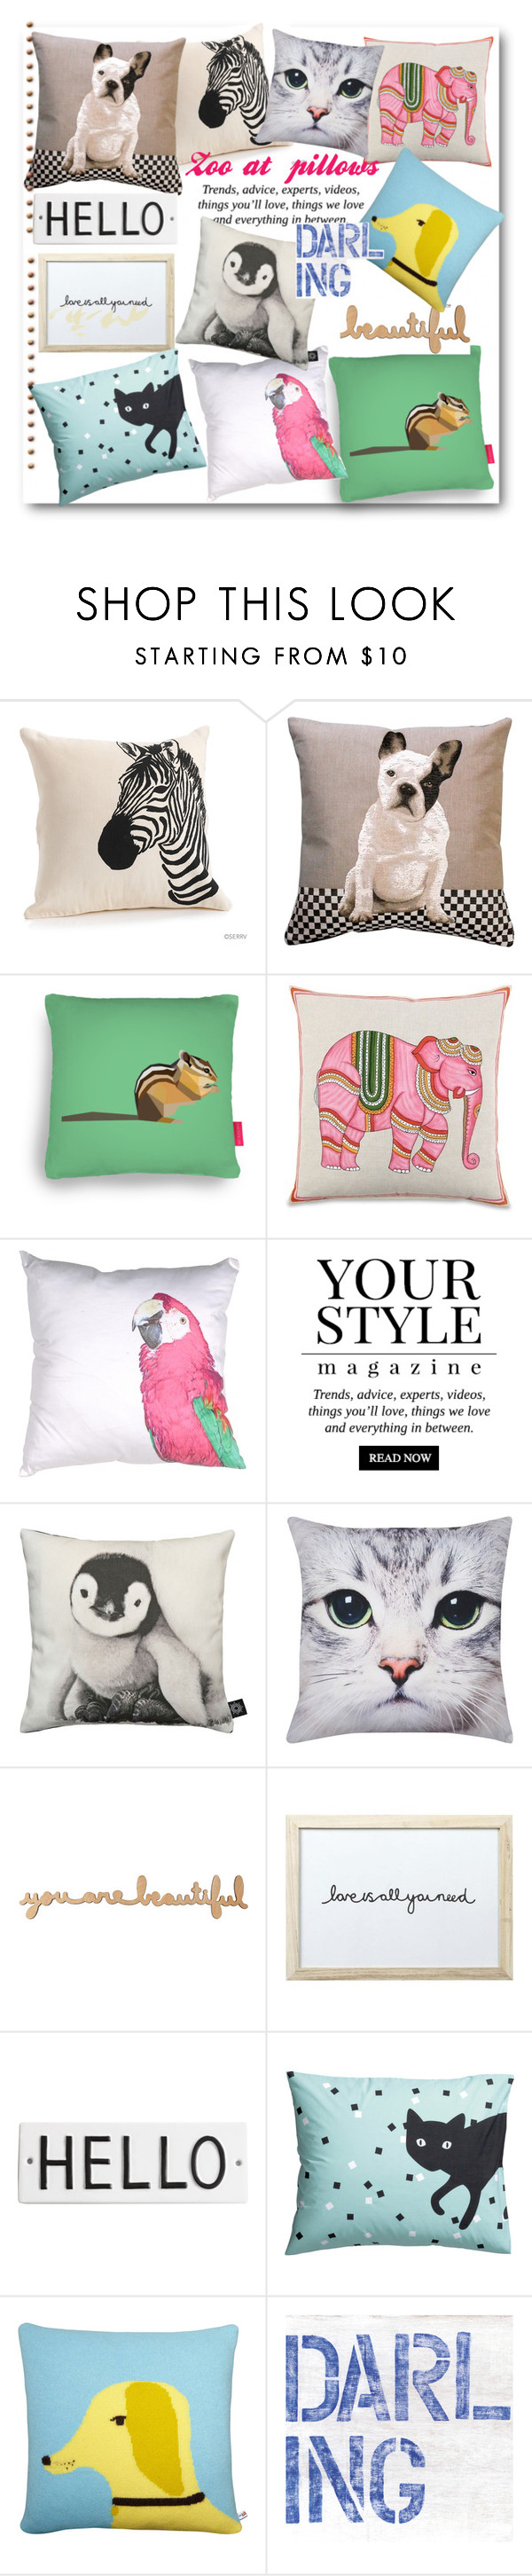 """""""Zoo at my pillows..."""" by gul07 ❤ liked on Polyvore featuring interior, interiors, interior design, home, home decor, interior decorating, Pillow Decor, Ohh Deer, John Robshaw and Pussycat"""